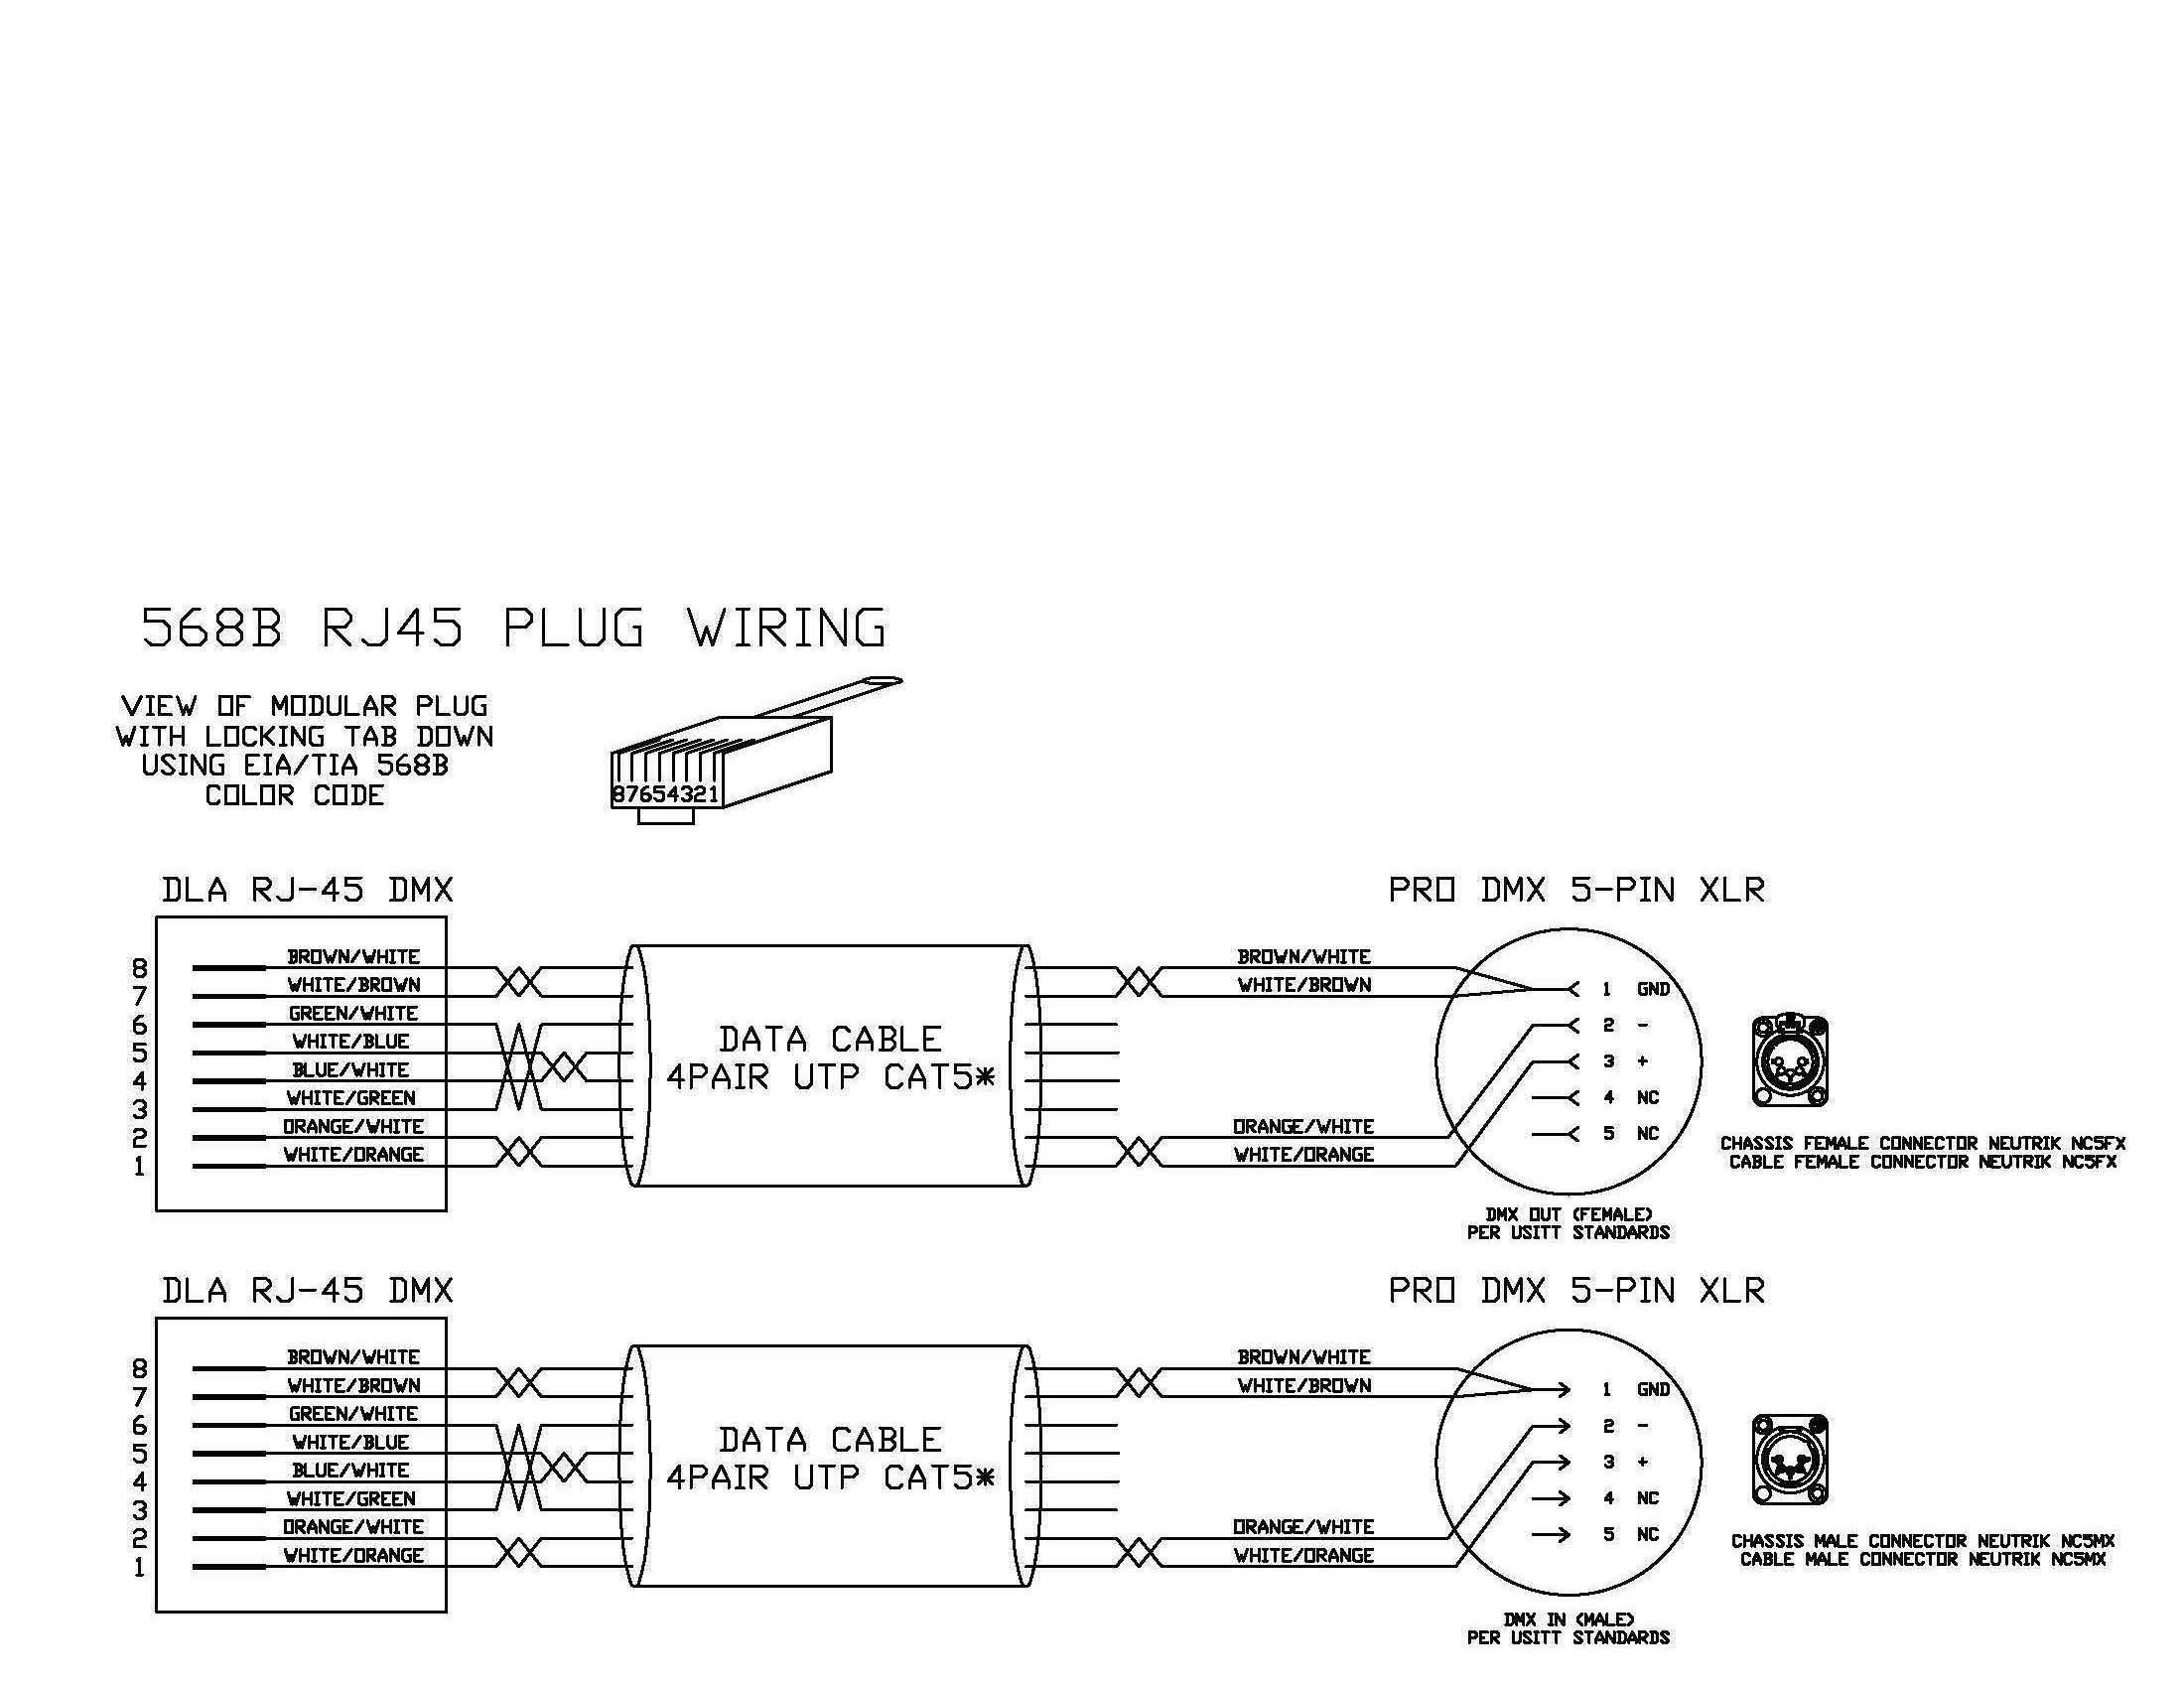 e975ddb6a839e630c21b81db05ca4fa6 xlr to rj45 wiring diagram xlr electrical wiring diagrams what does nc mean in wiring diagram at readyjetset.co